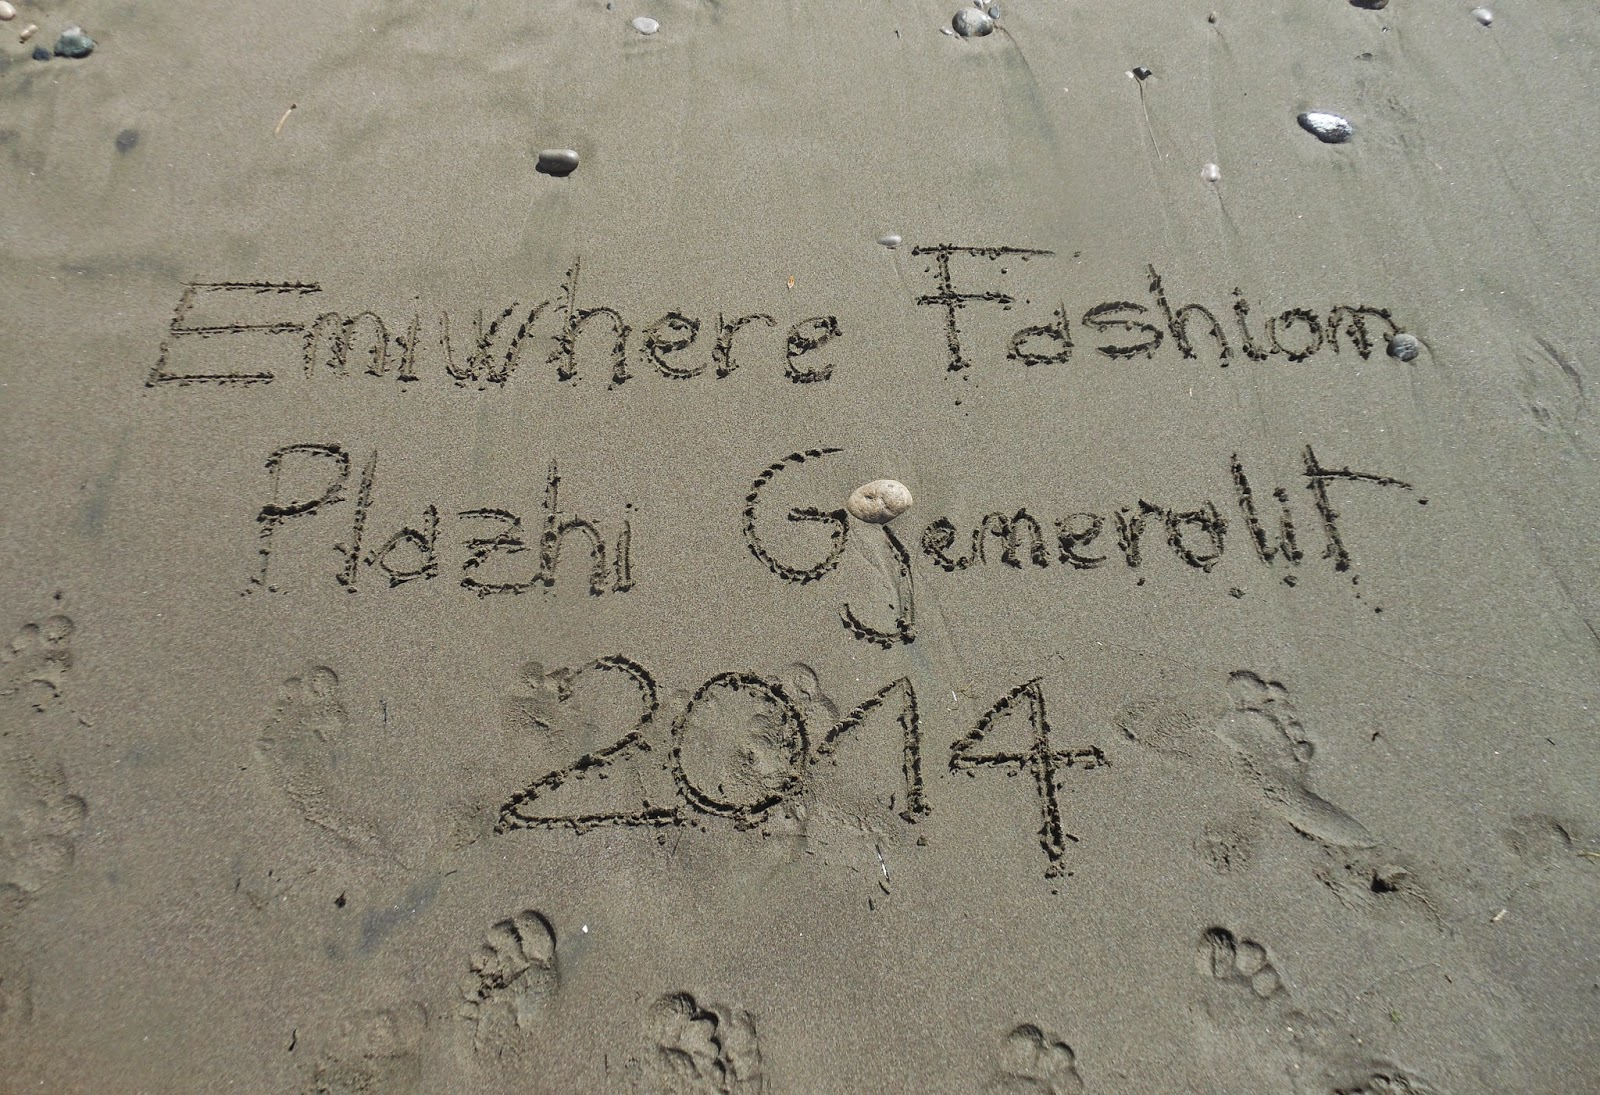 Eniwhere Fashion - Albania 2014